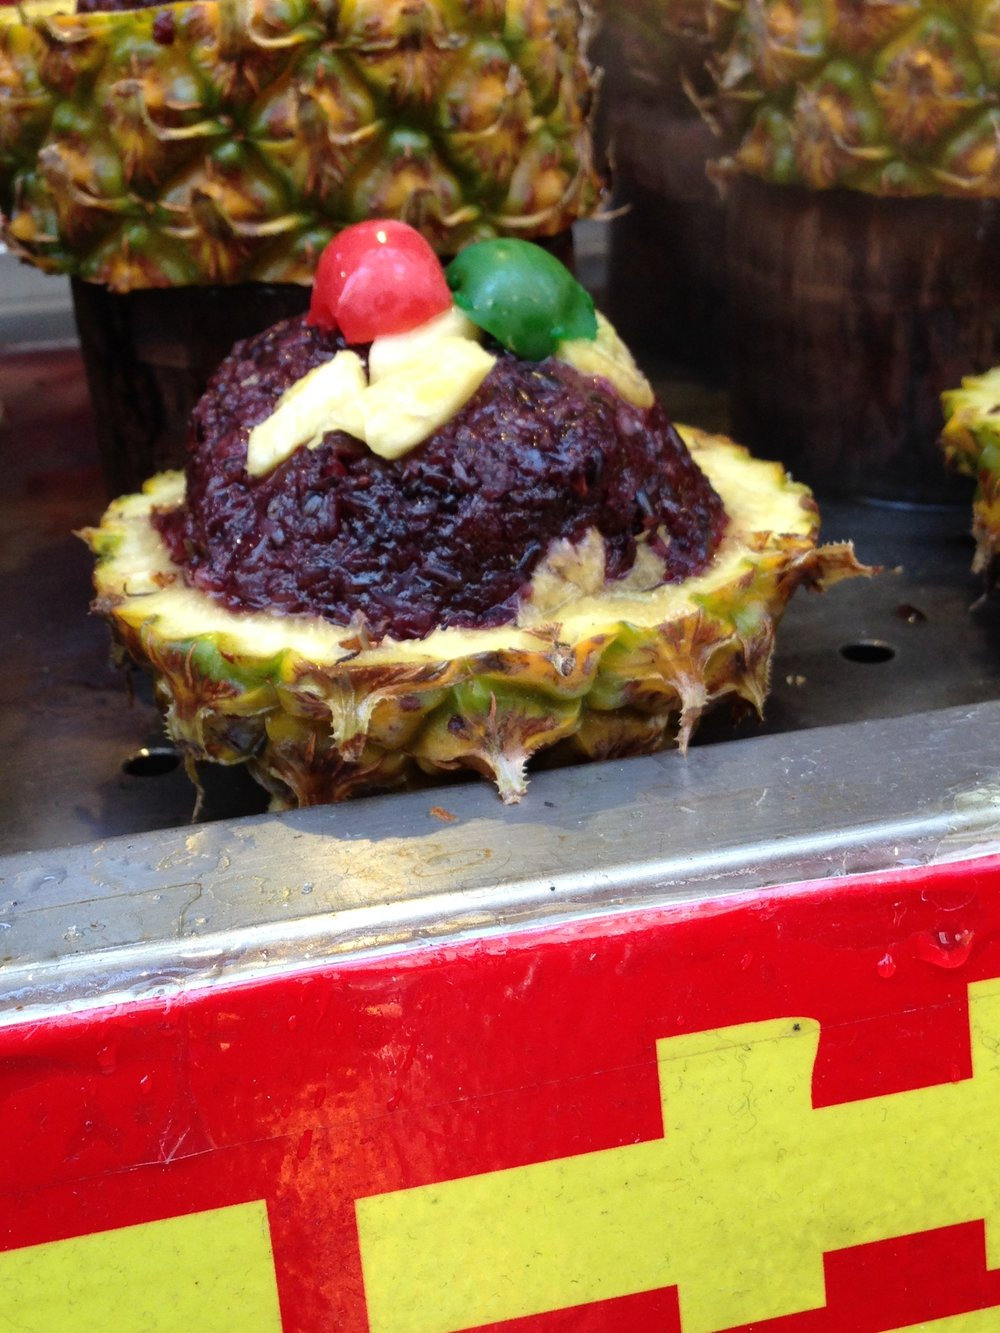 I'm not certain what is in this pineapple. Possibly red rice.